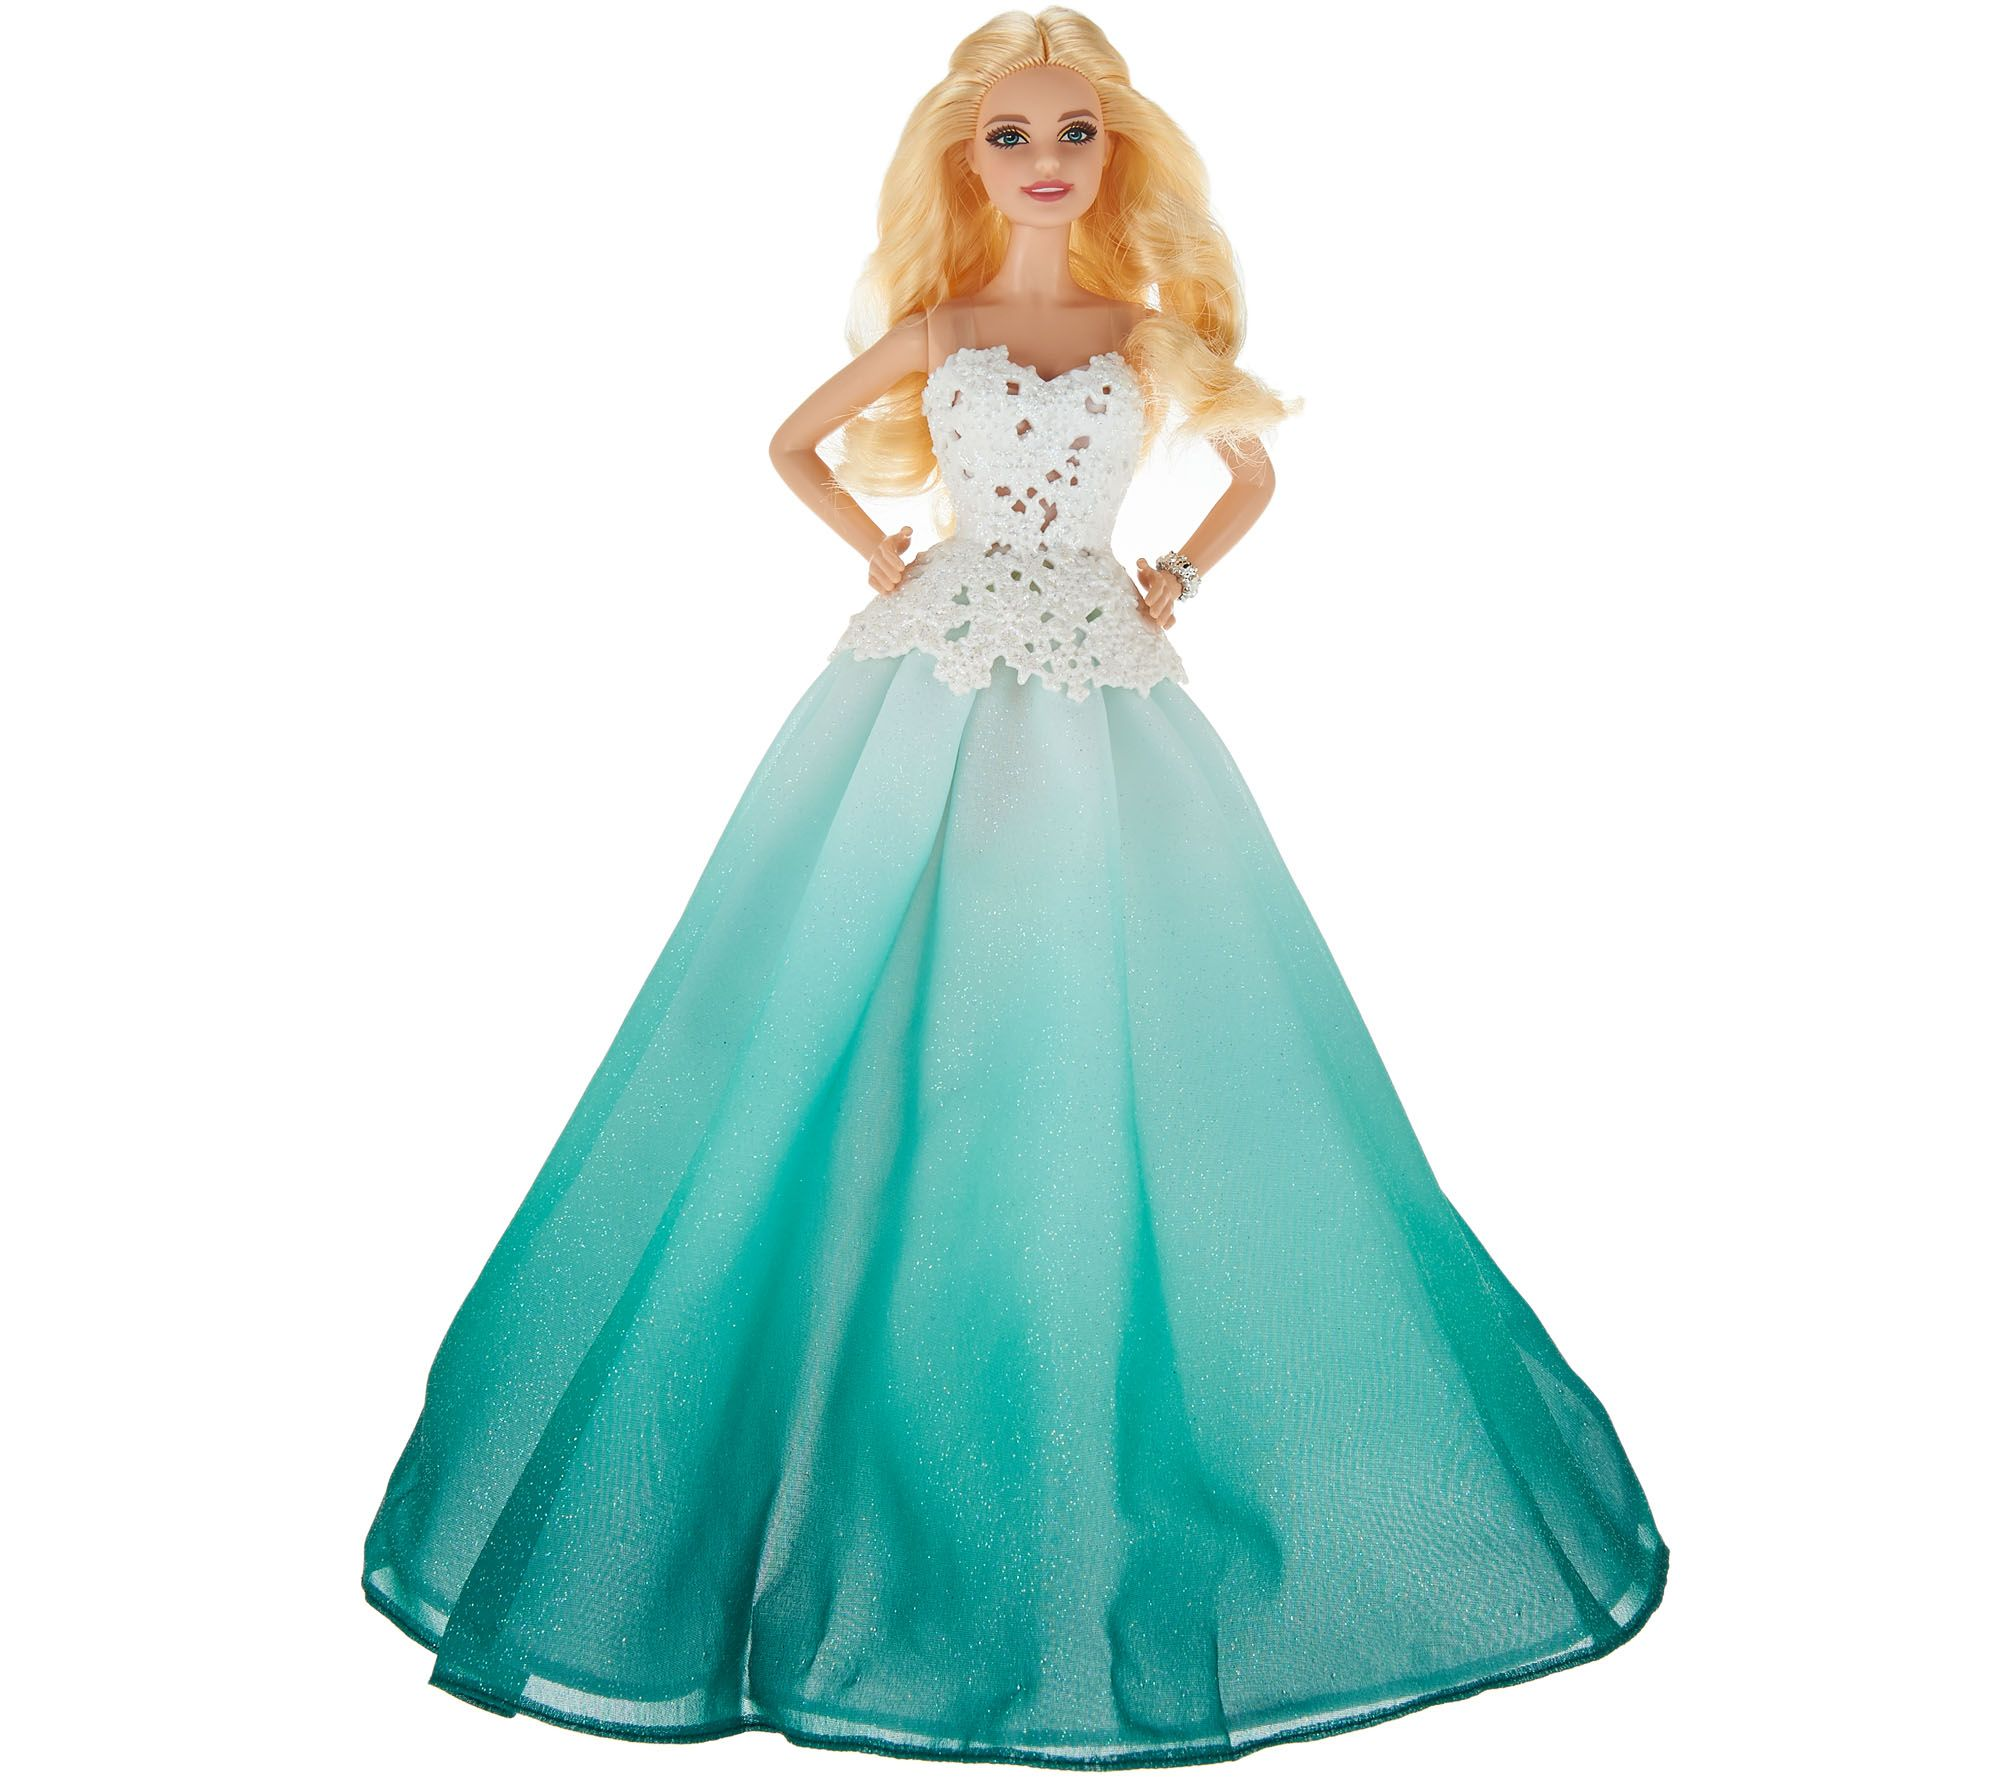 2016 Holiday Keepsake Collector Barbie Doll By: Mattel - Page 1 ...